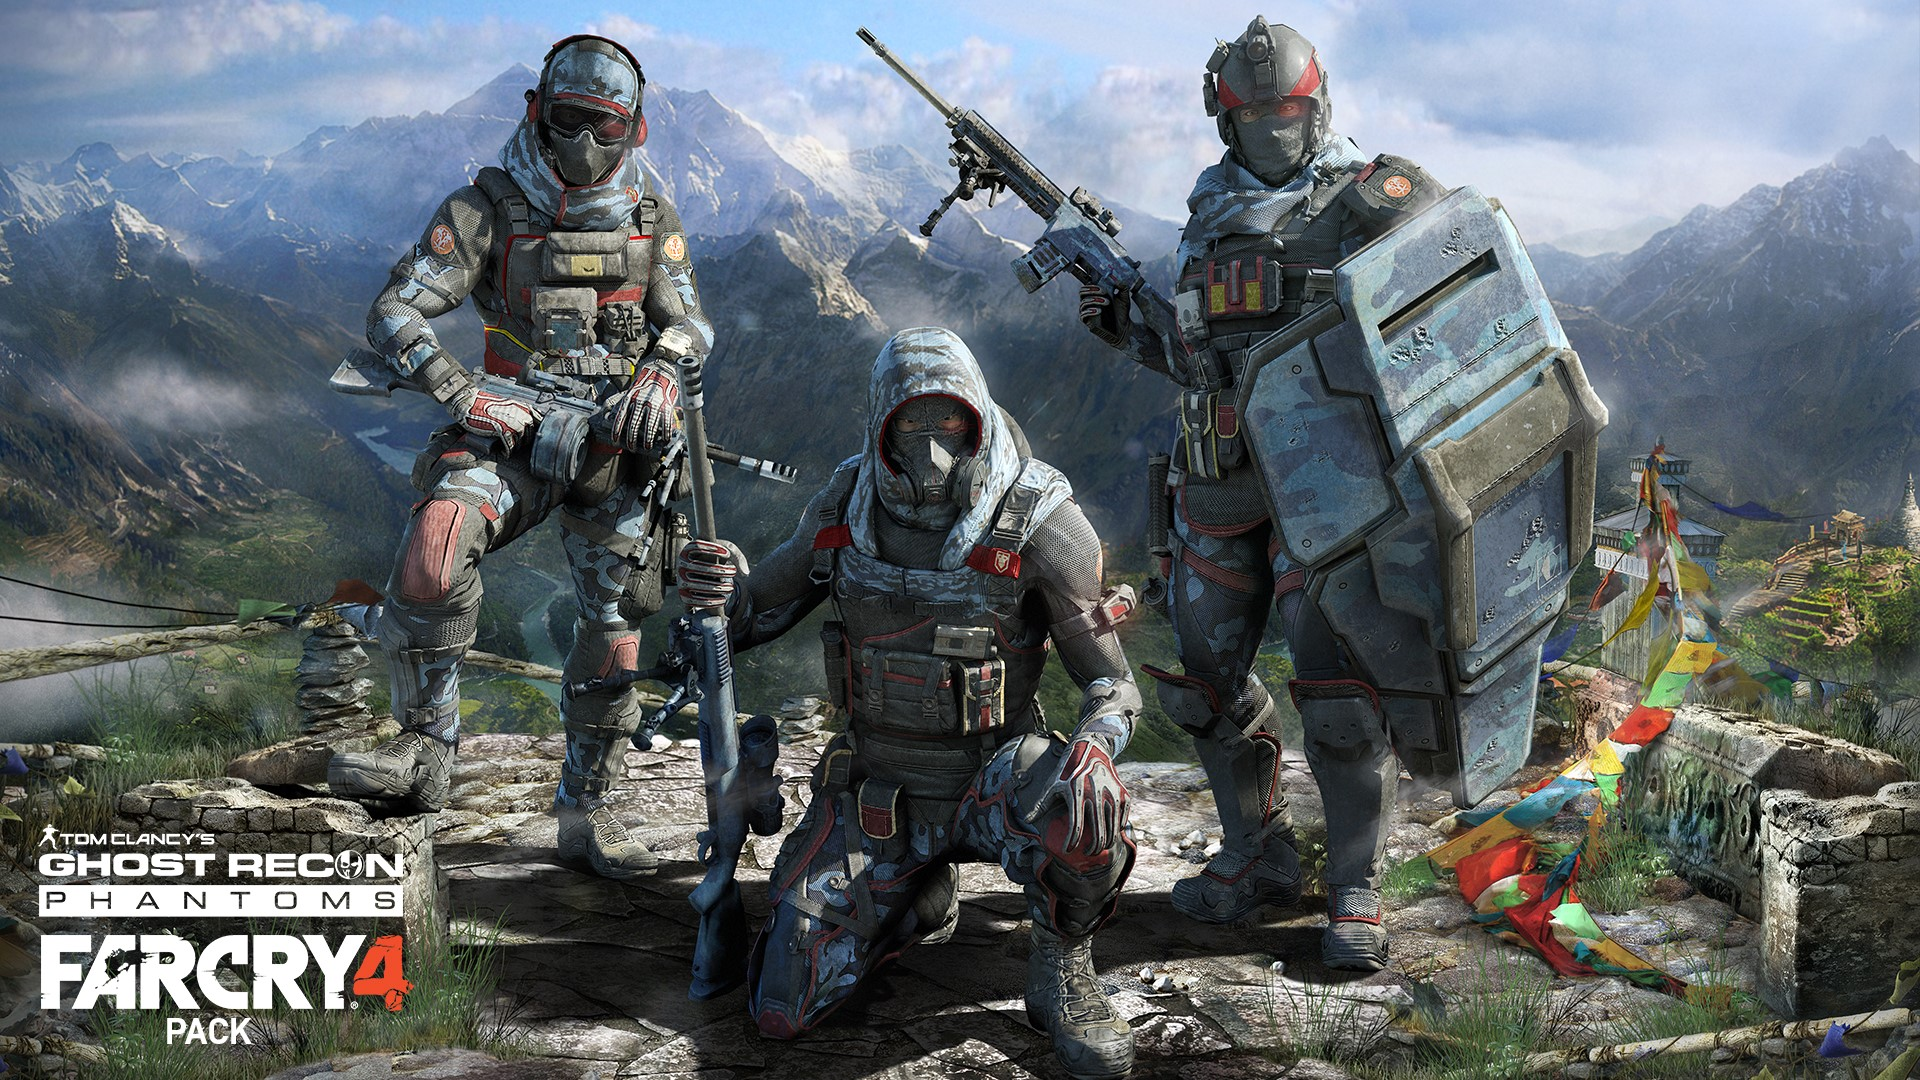 Tom Clancy's Ghost Recon Phantoms incontra Far Cry 4